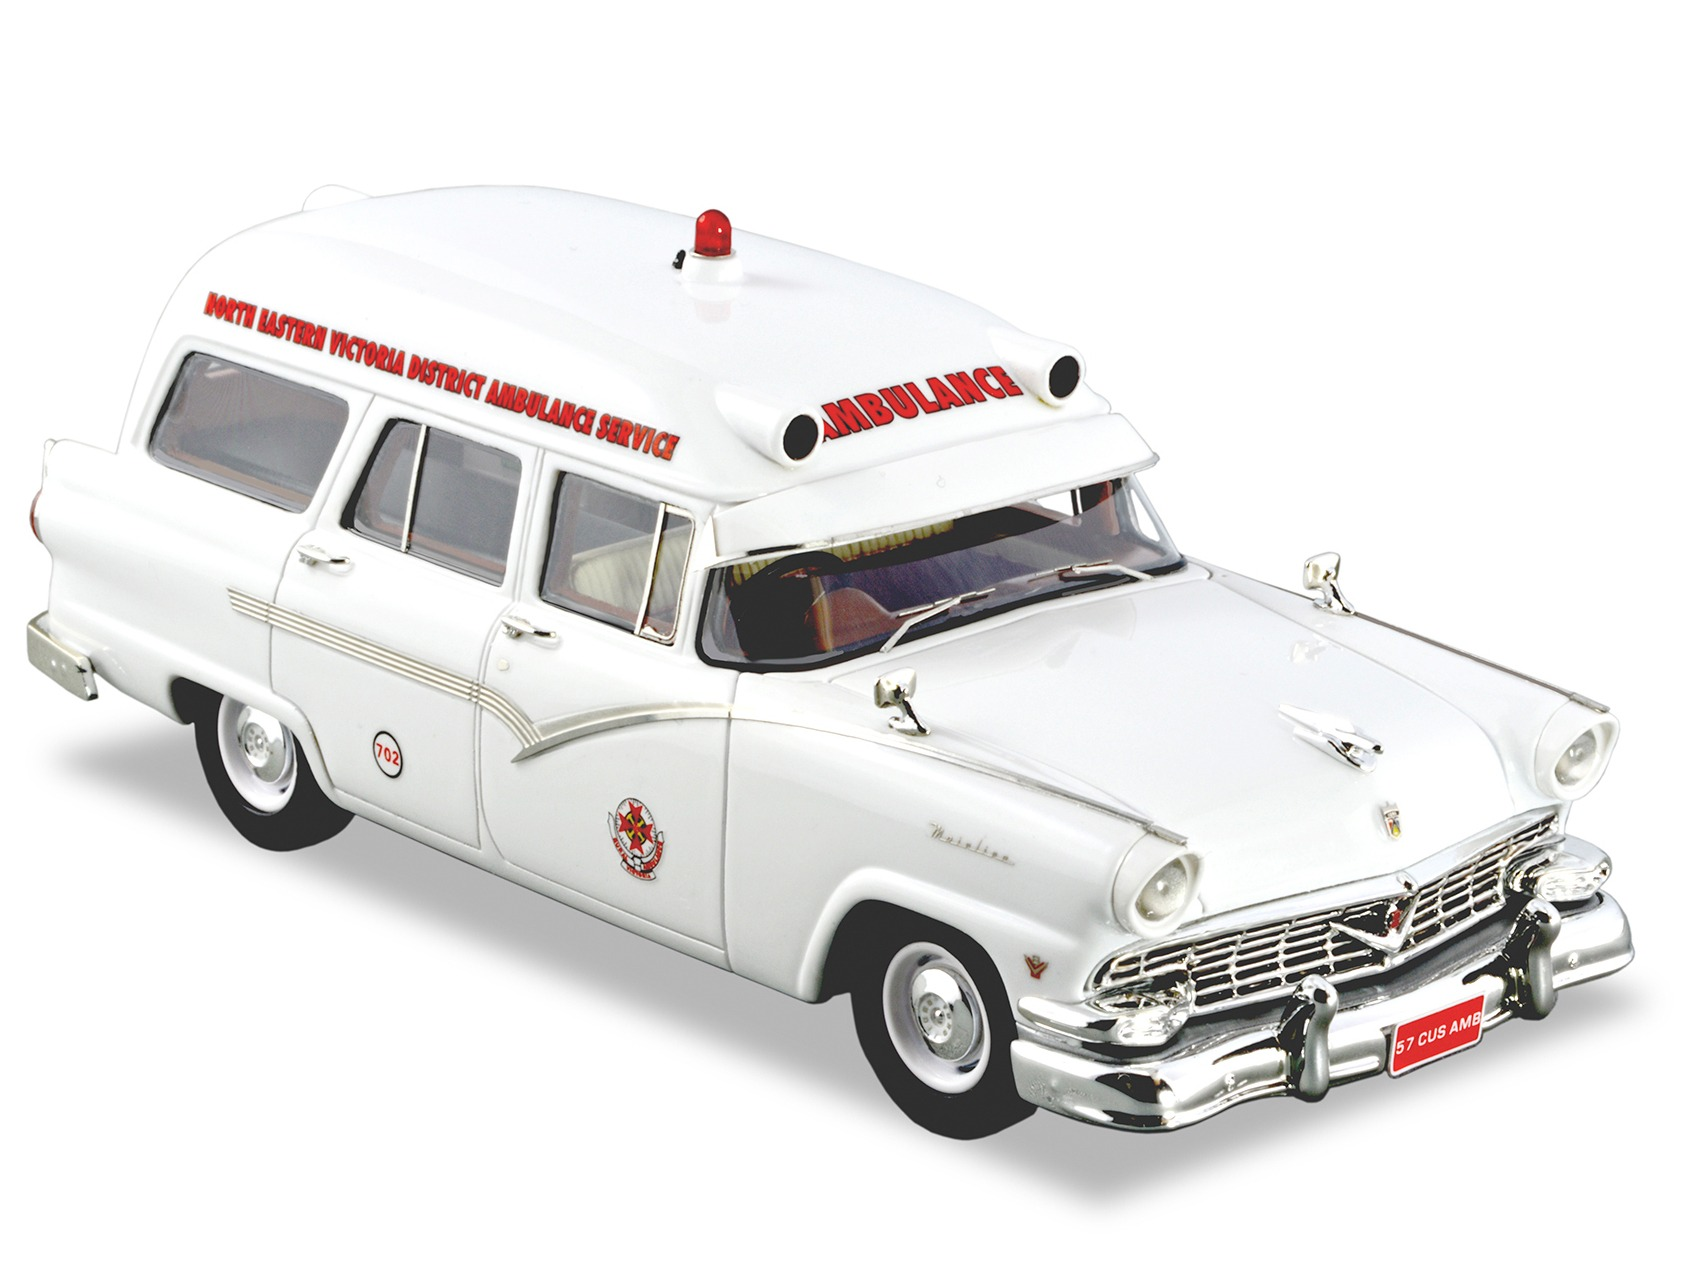 1957 Ford Mainline AMB – White